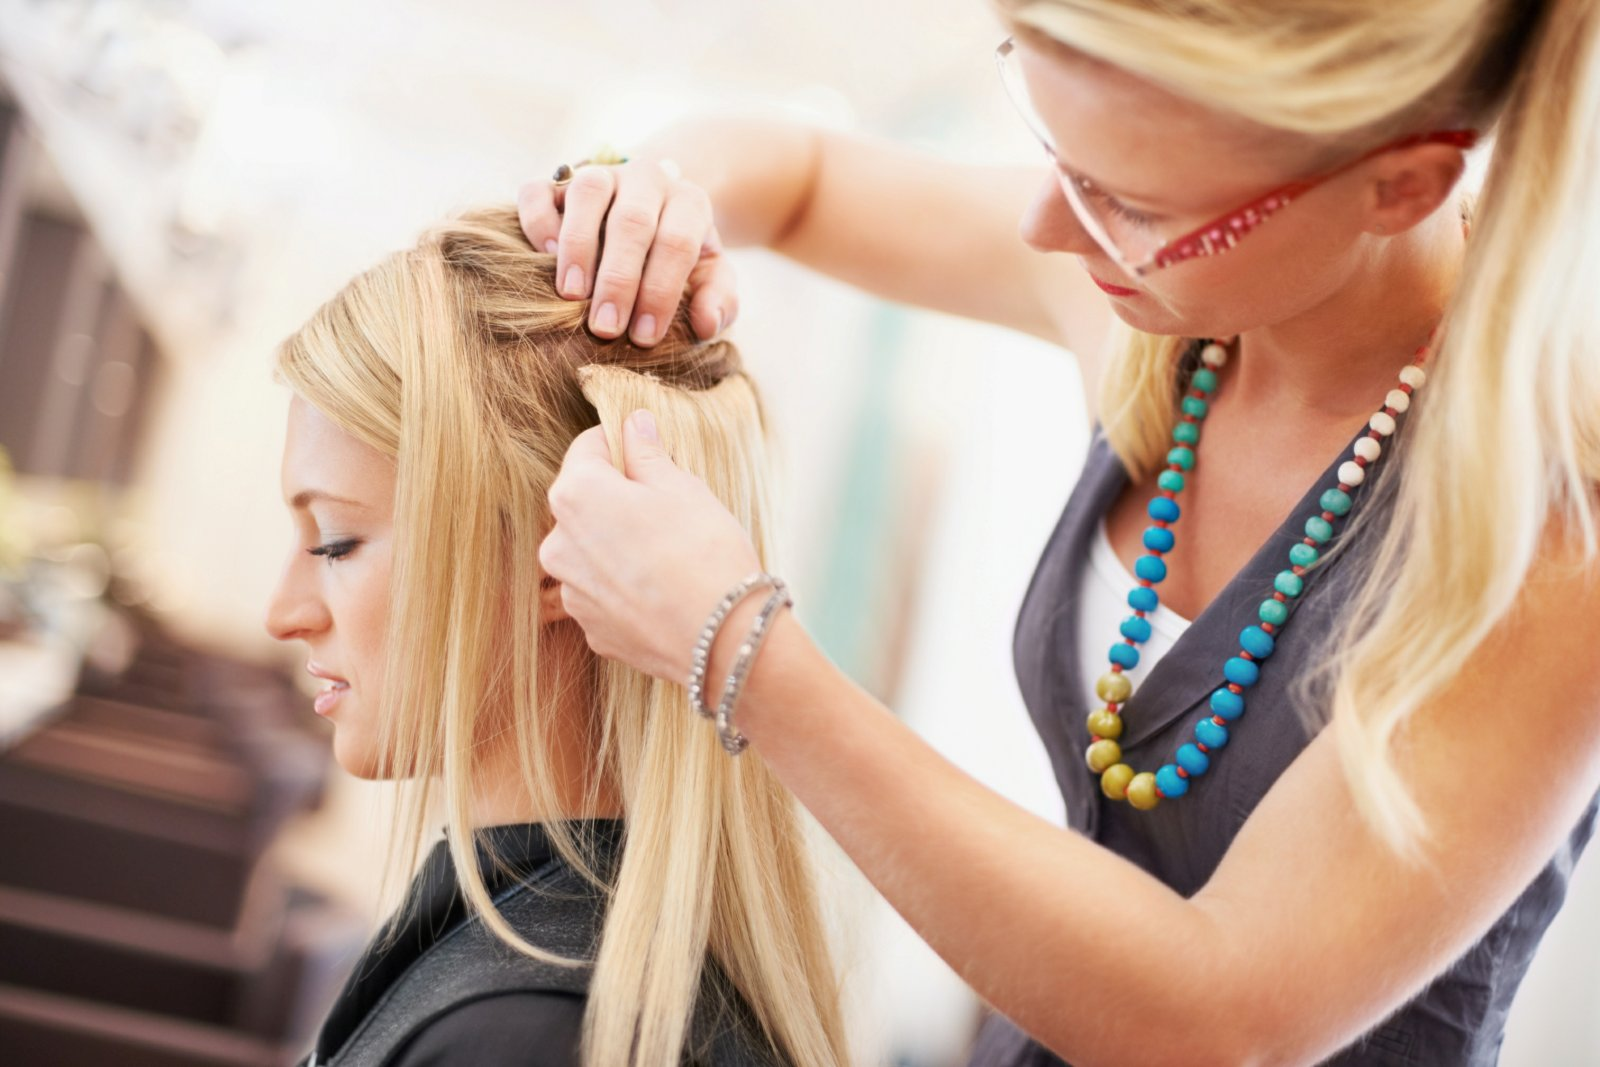 Amaci Salon, best of Boston's beauty salons, stylist adding extensions to a customer's hair